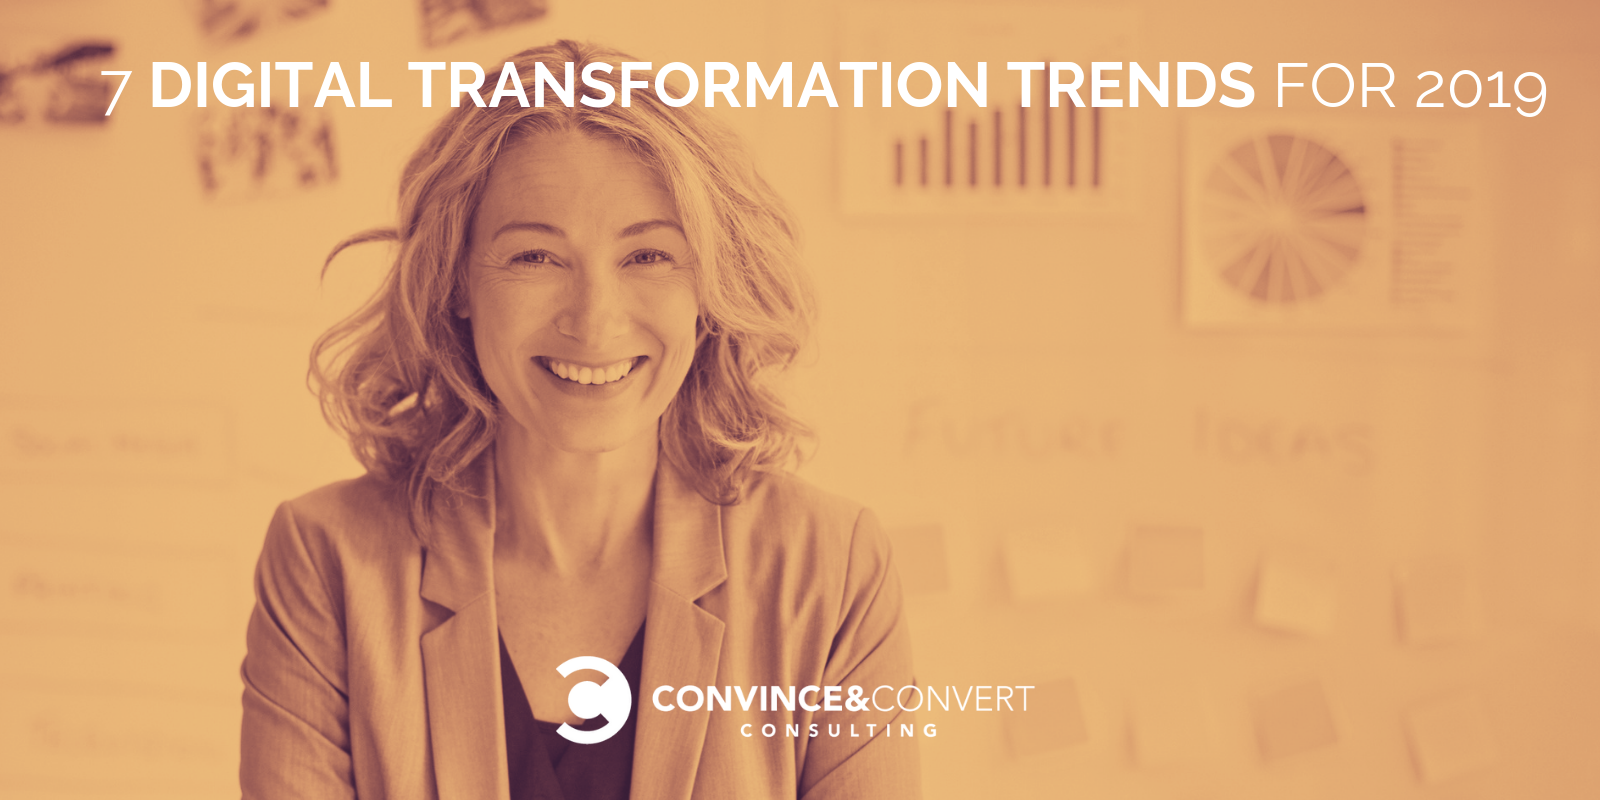 7 Digital Transformation Trends for 2019